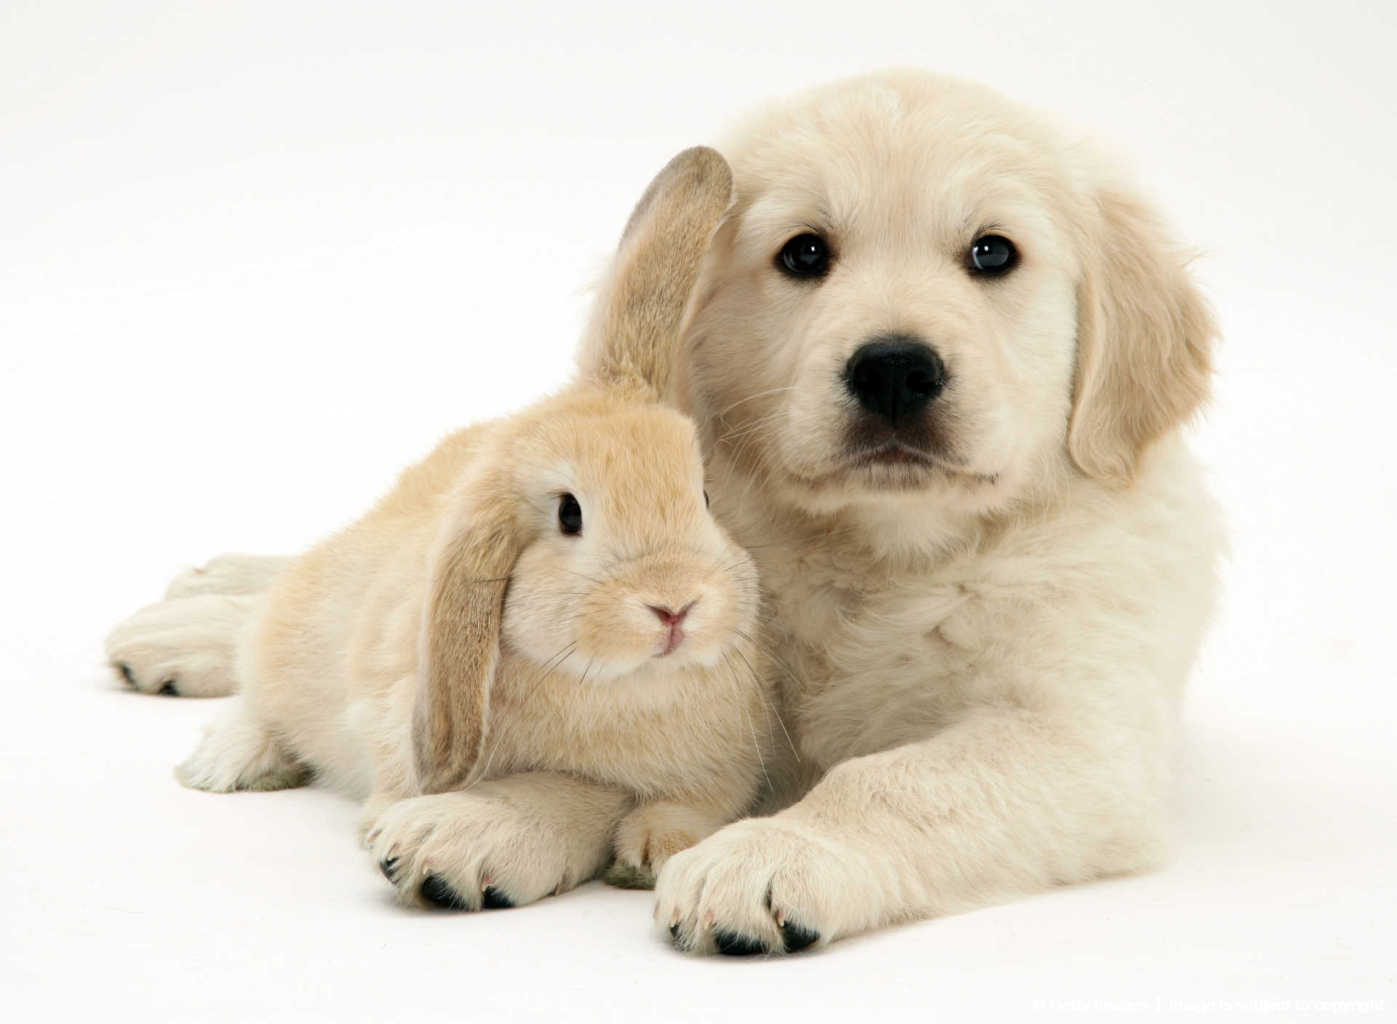 Golden Retriever with young Sandy Lop rabbit.